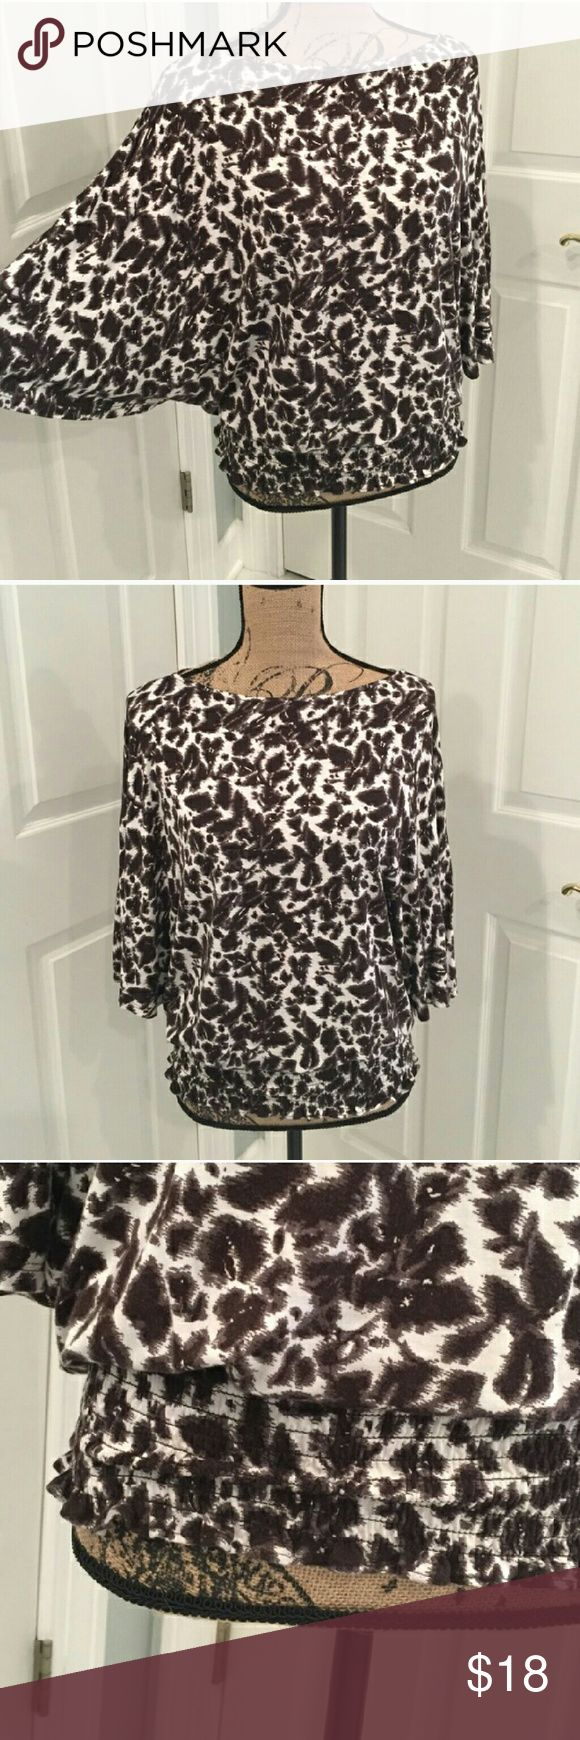 HEAD TURNING MK FABULOUS BLOUSE! 😘 Ladies, this blouse is absolutely gorgeous and unreal! Definitely a head turner! Wear to the office with slacks and a jacket or skirt. Throw on your favorite jeans and stilettos. Either way, you're going to look very hot in this, Michael Kors, blouse. Has been worn a couple times but still in mint condition! Was recently dry-cleaned and not worn since! Ladies don't pass up this great deal! 😘 😘 😘 Michael Kors Tops Blouses